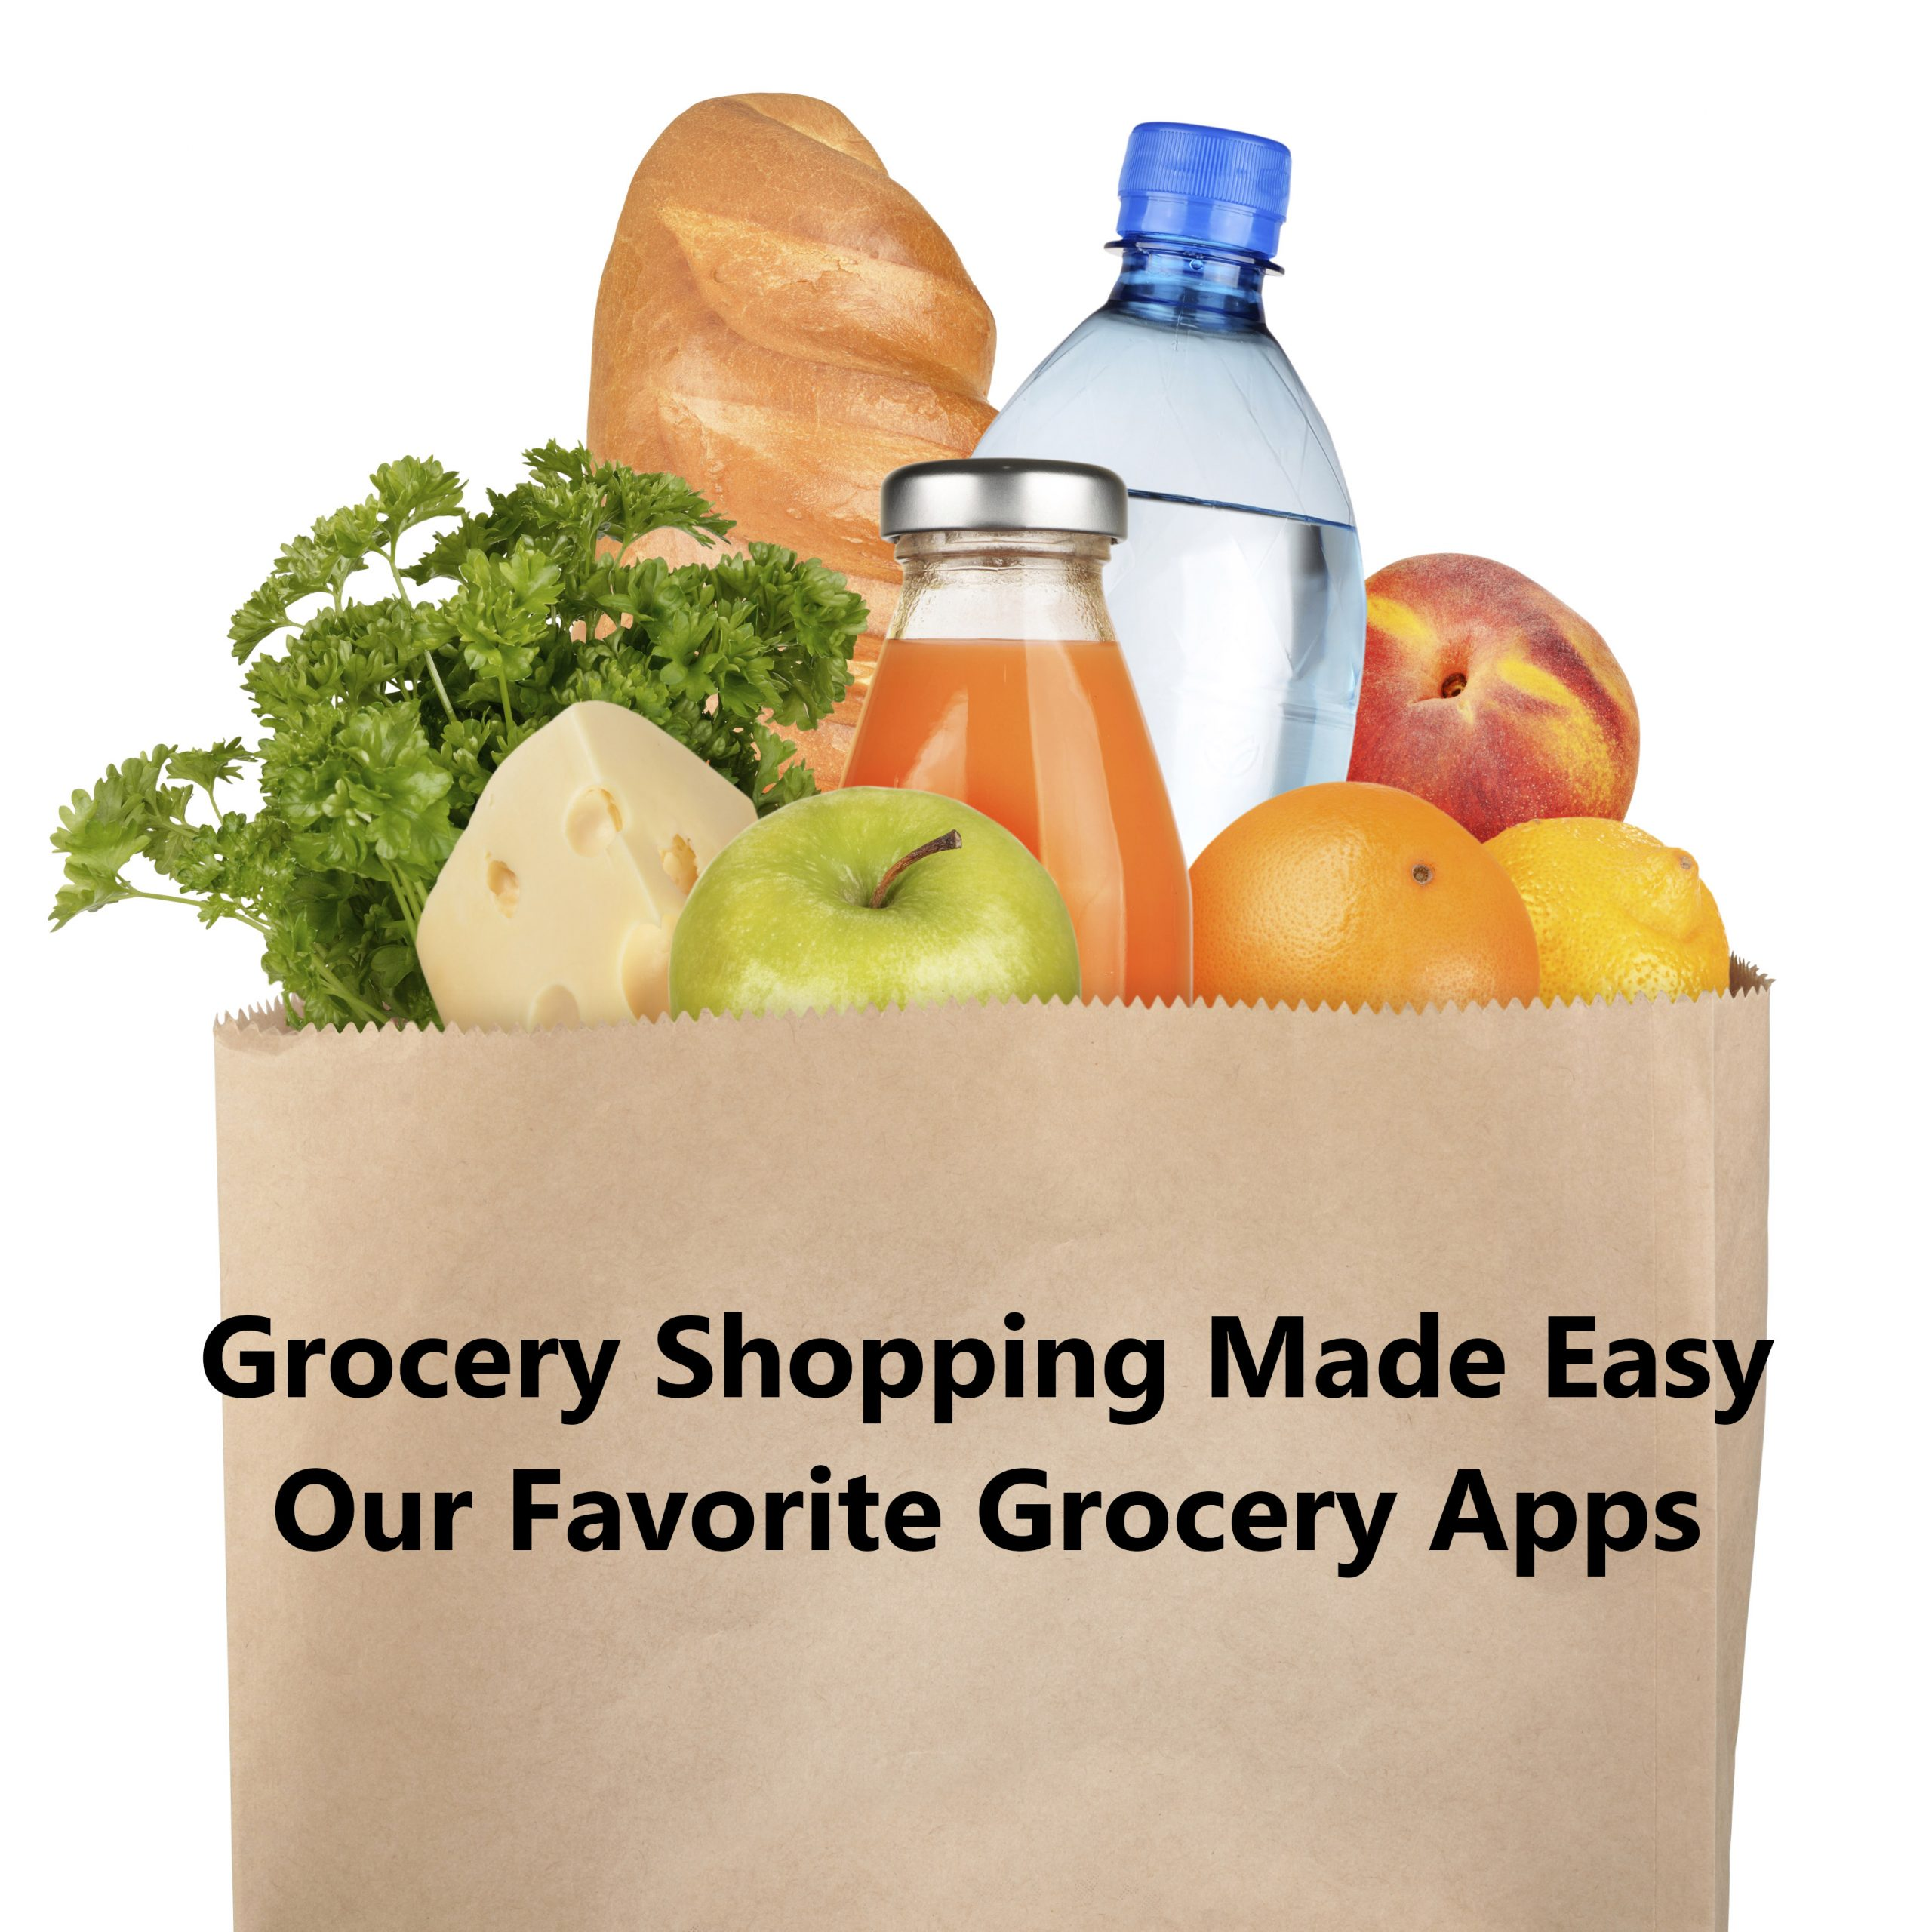 Grocery Shopping Made Easy